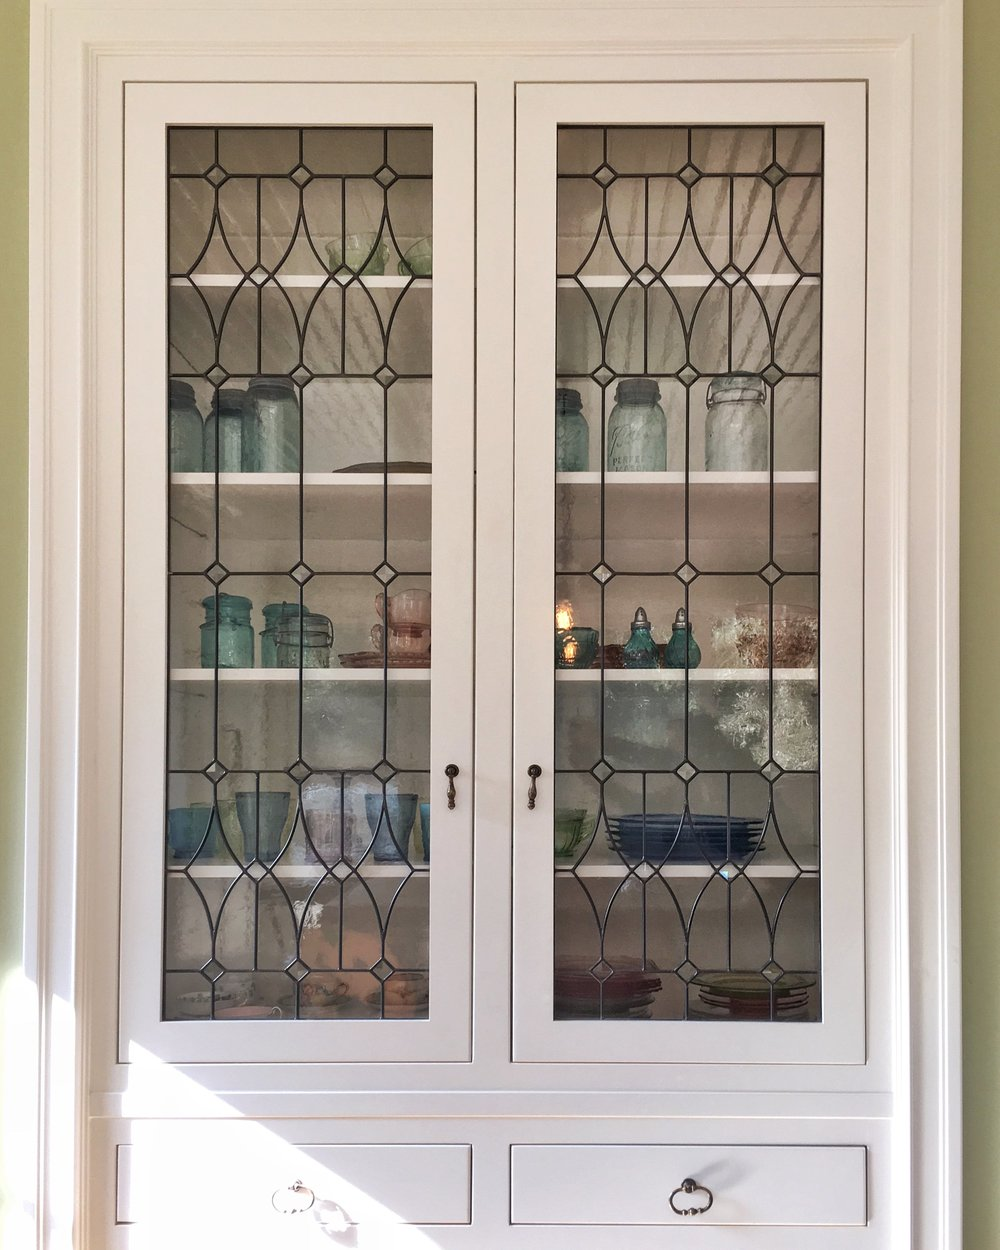 Stained Leaded Glass Legacy Glass Studios Atherton San Francisco Menlo Park California Custom Design Beveled Traditional Victorian Cabinet Doors.JPG